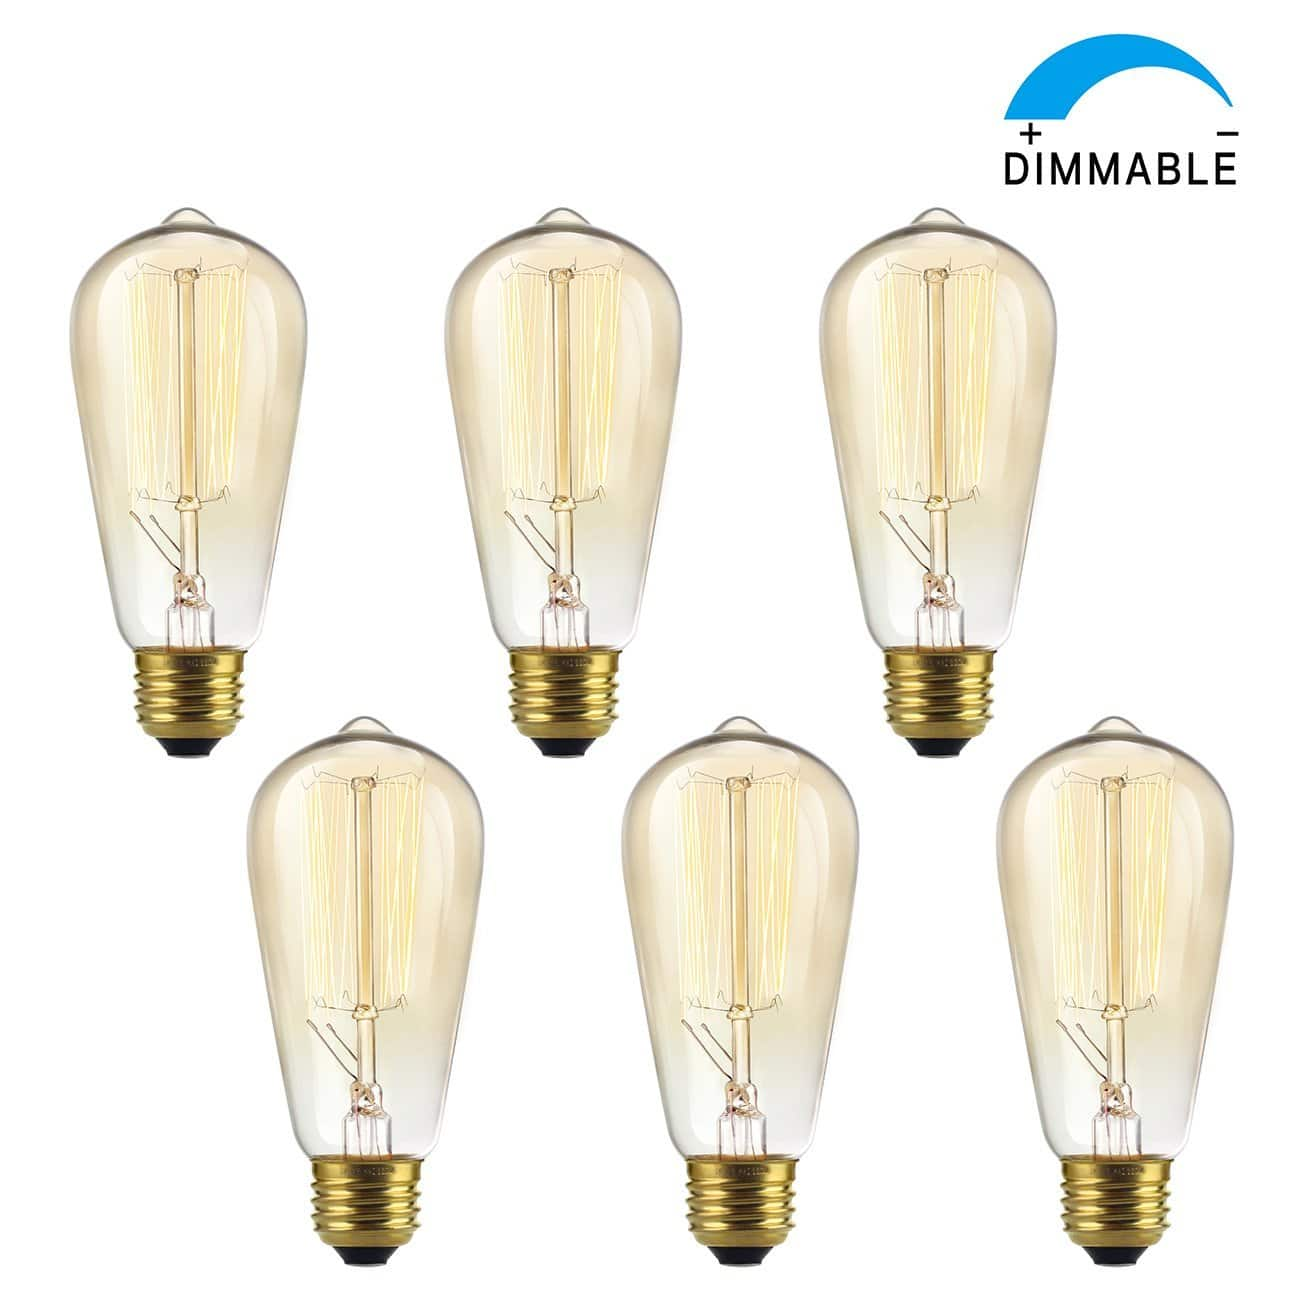 6-Pack SHINE HAI Dimmable ST58 Vintage Edison Bulbs $5.99 @ Amazon